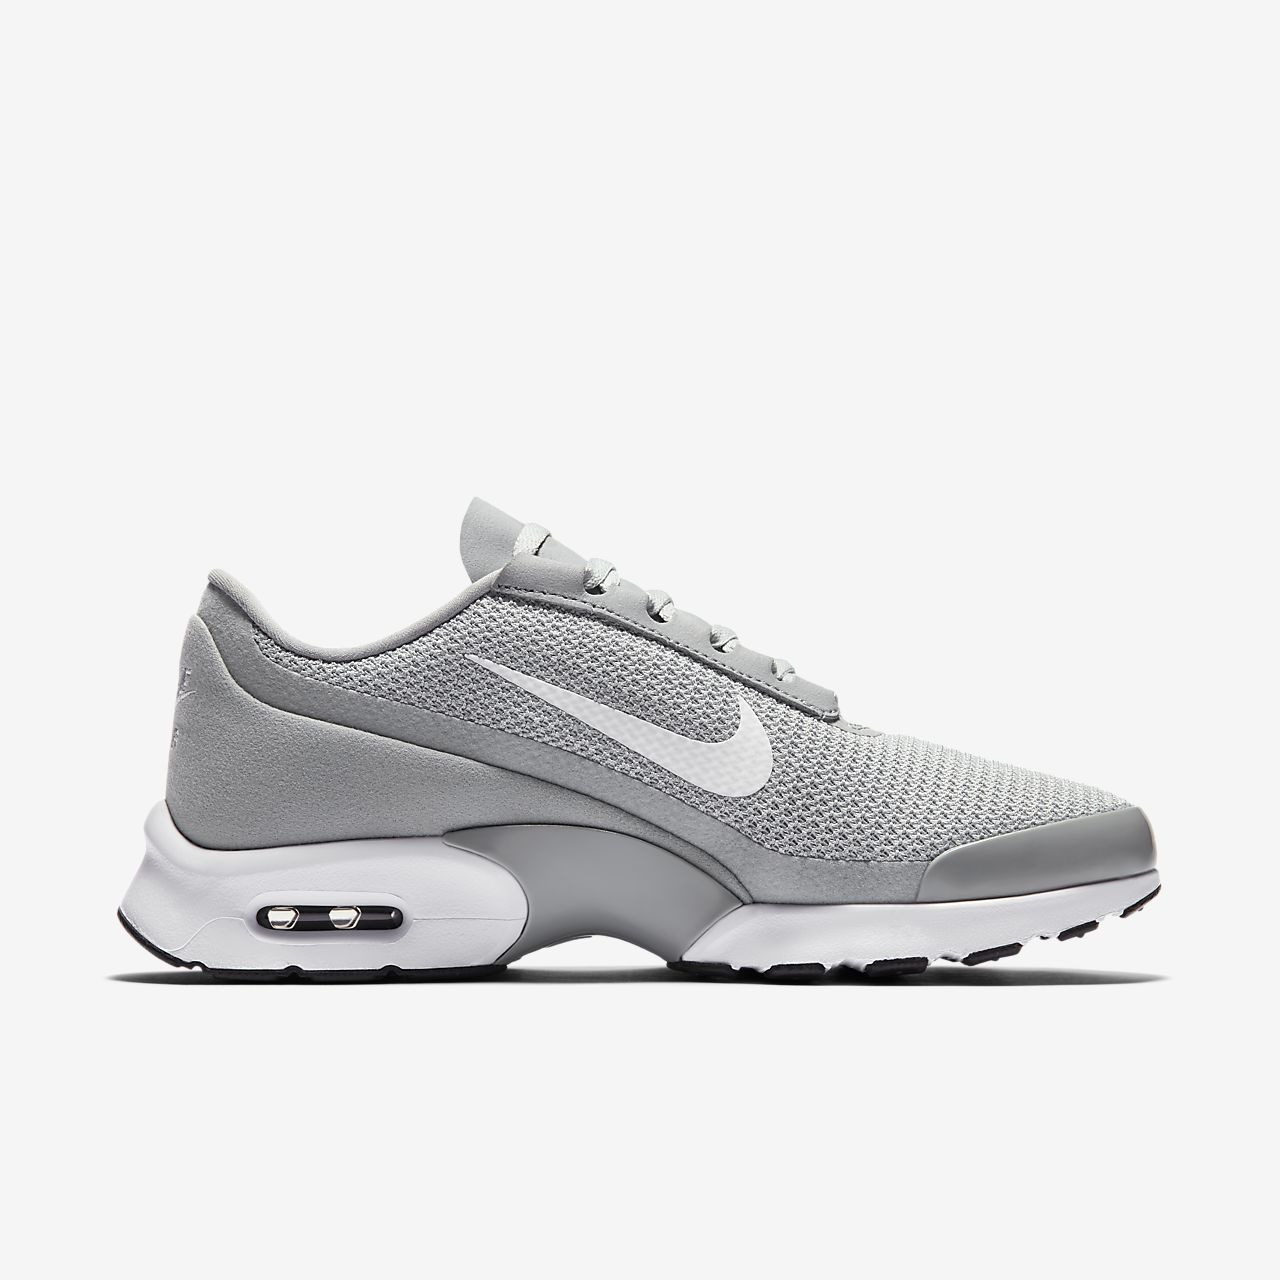 ... Chaussure Nike Air Max Jewell pour Femme